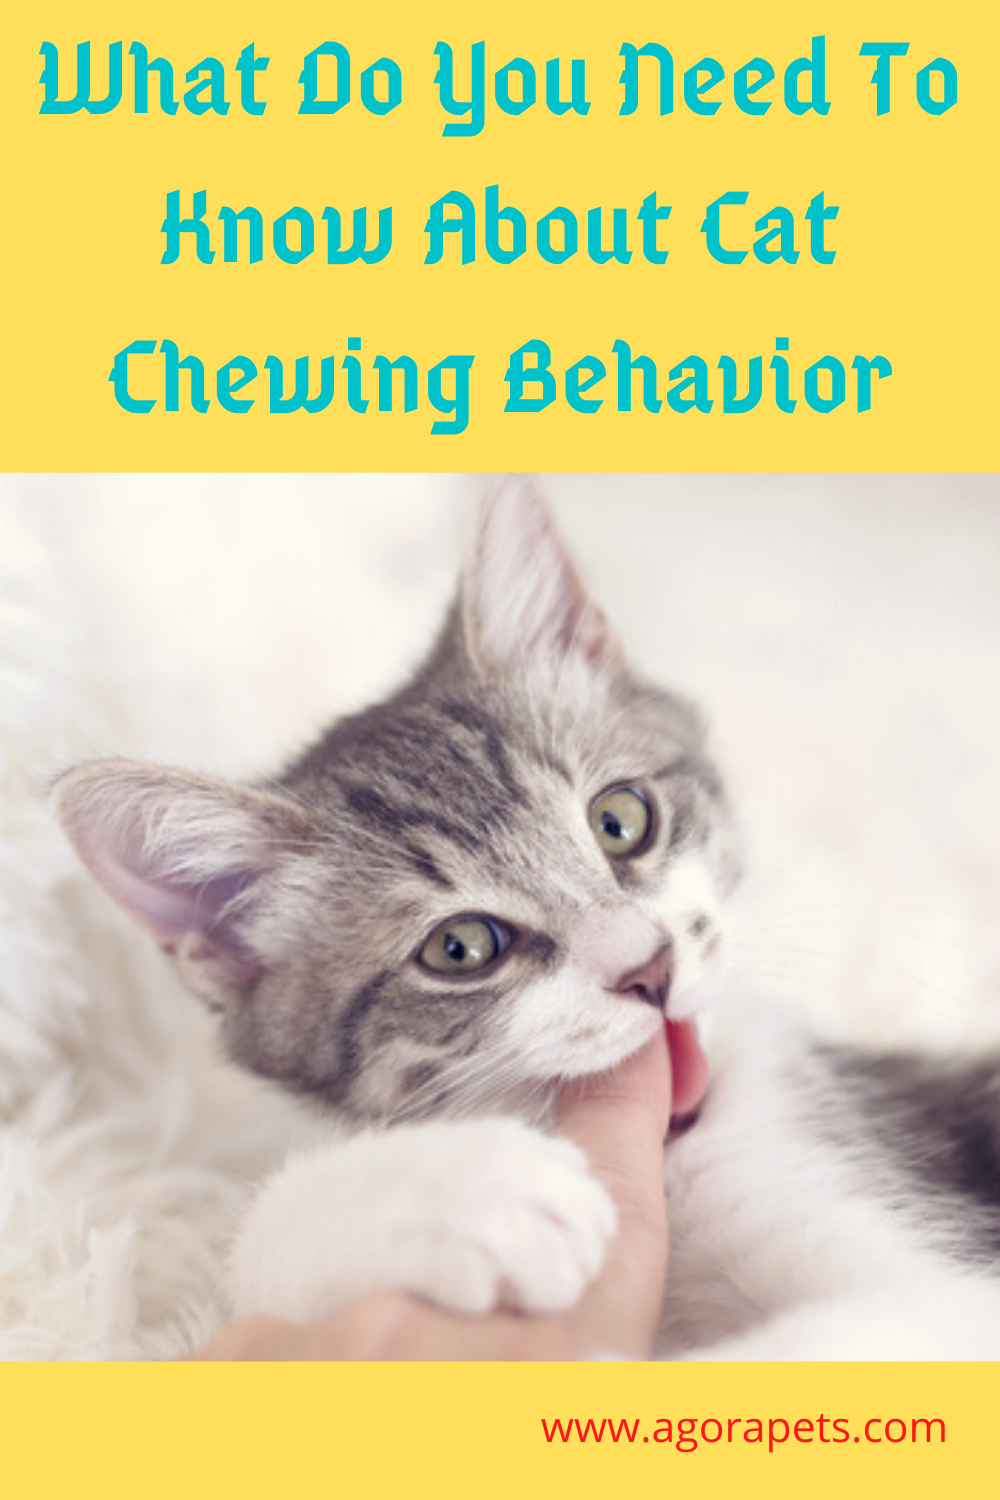 What Do You Need To Know About Cat Chewing Behavior in